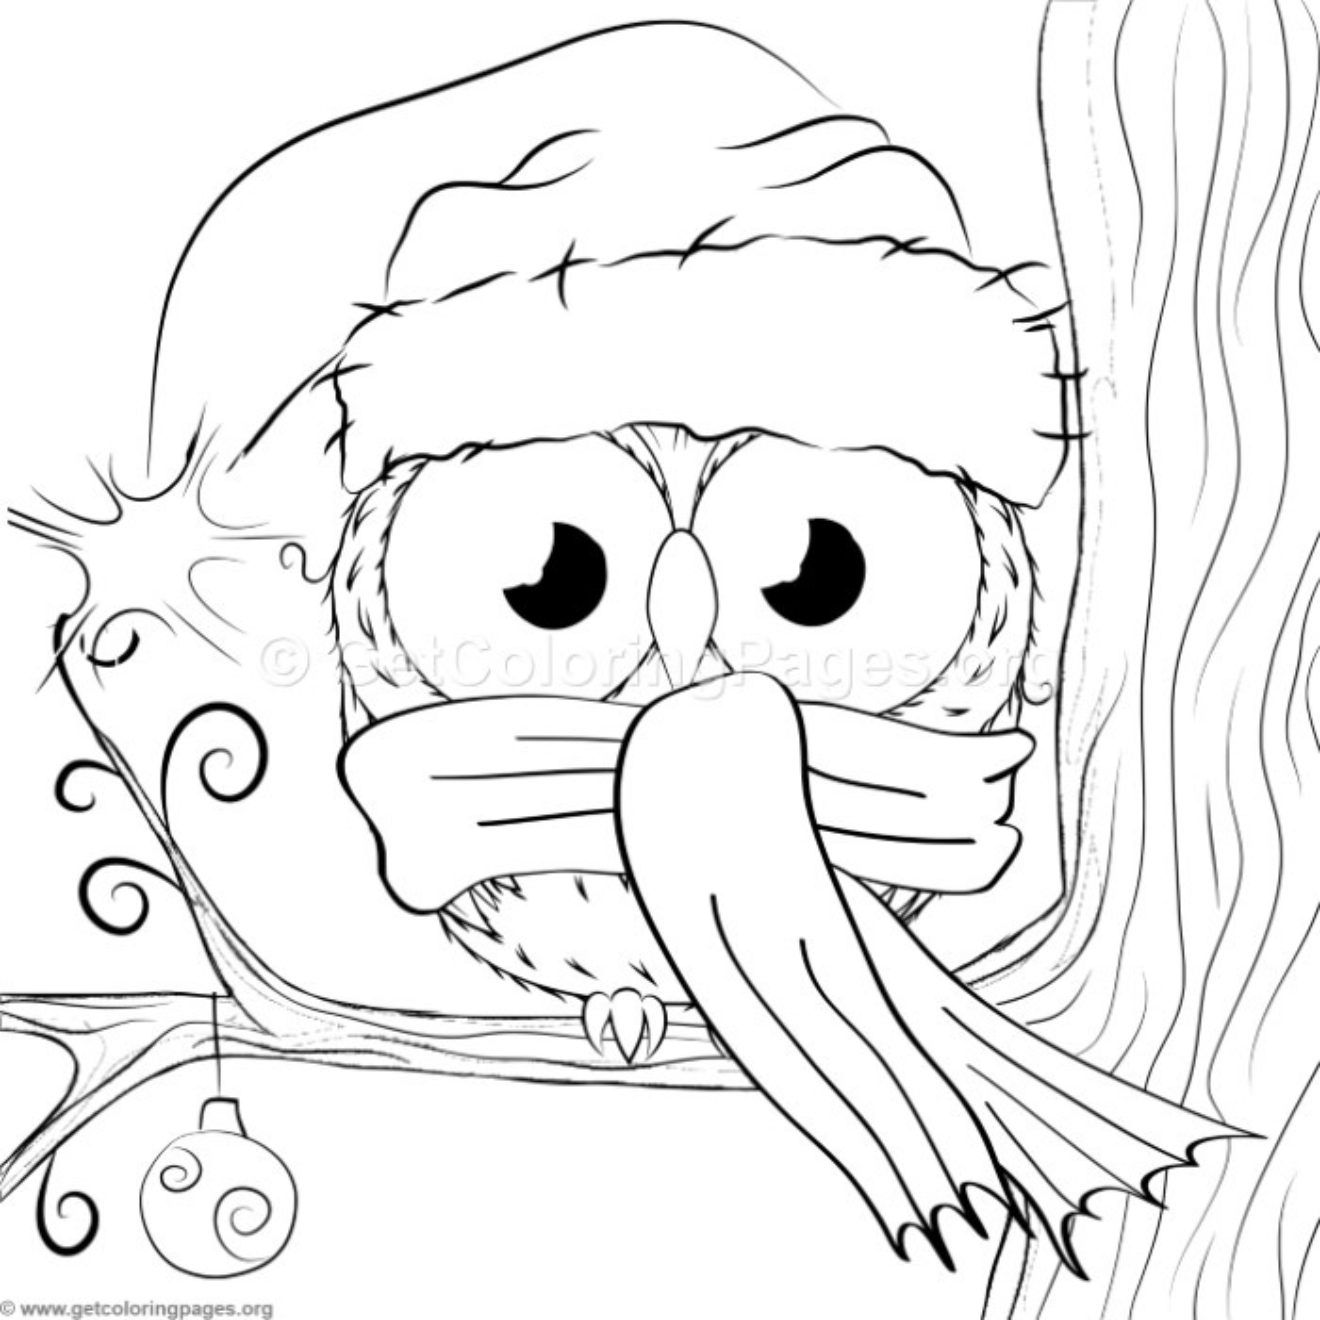 Cute Christmas Owl 20 Coloring Pages – GetColoringPages.org  Owl